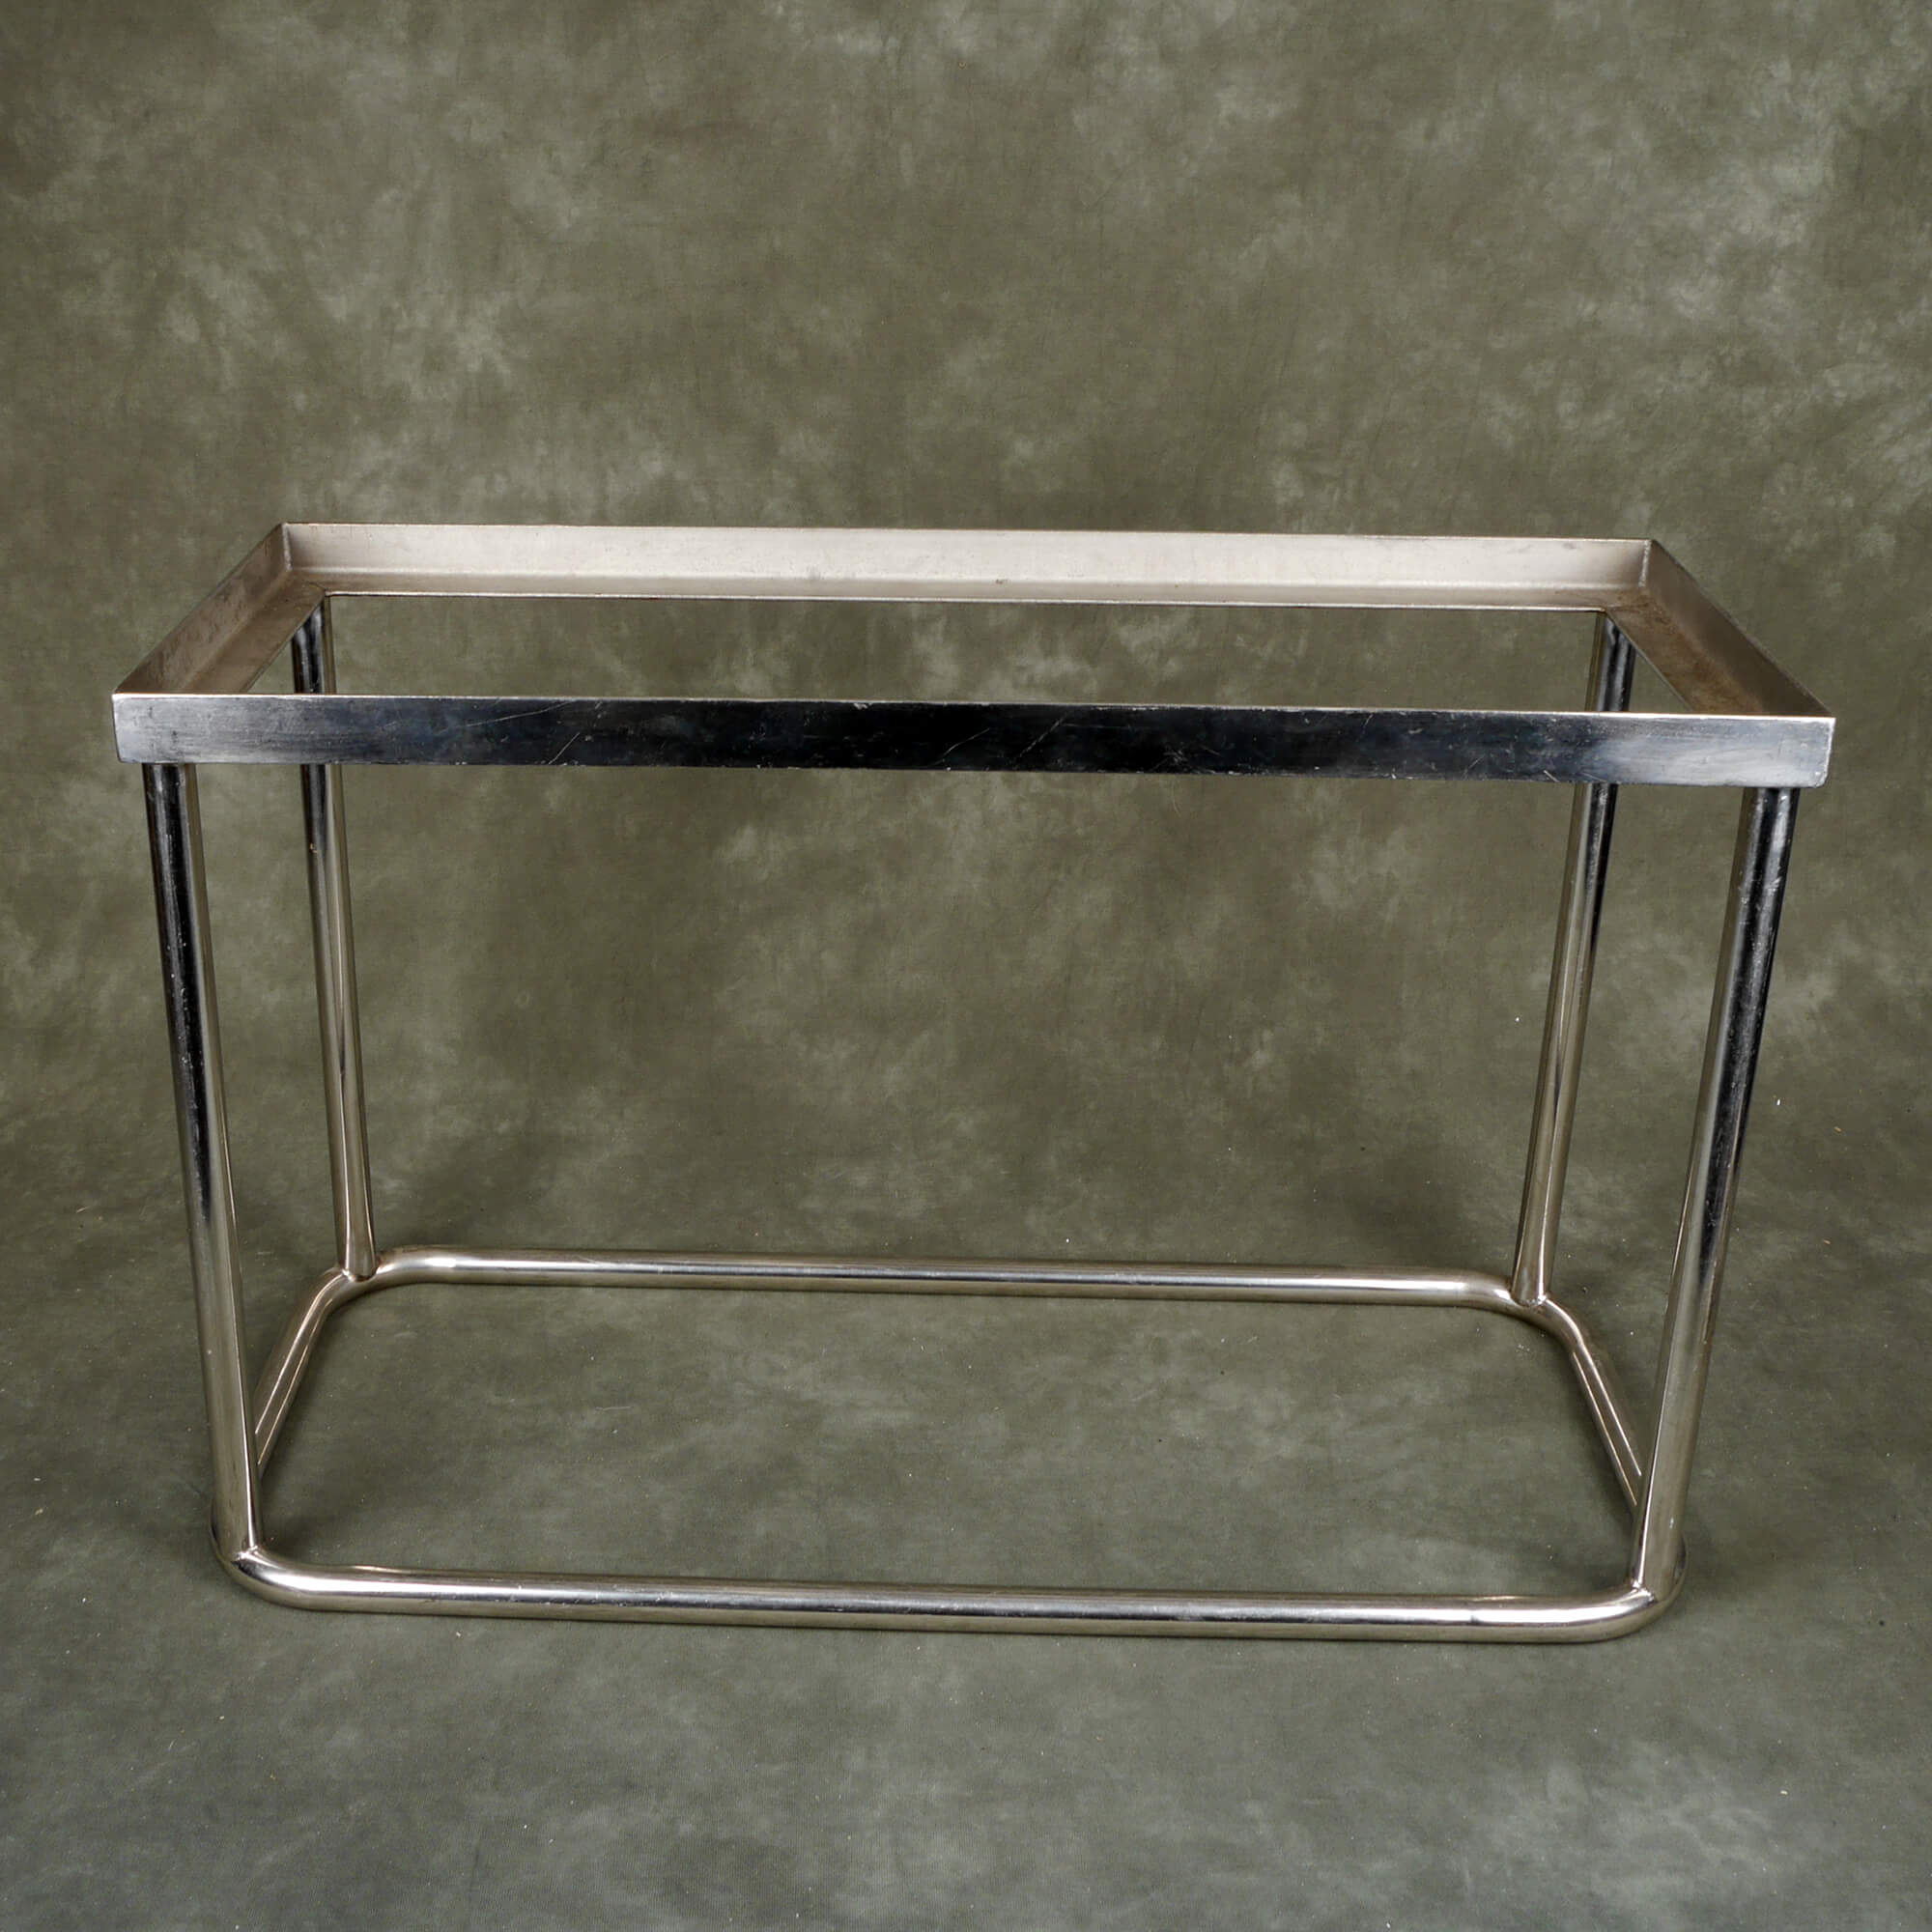 Chrome Amp Stand for Vox AC30 - 2nd Hand